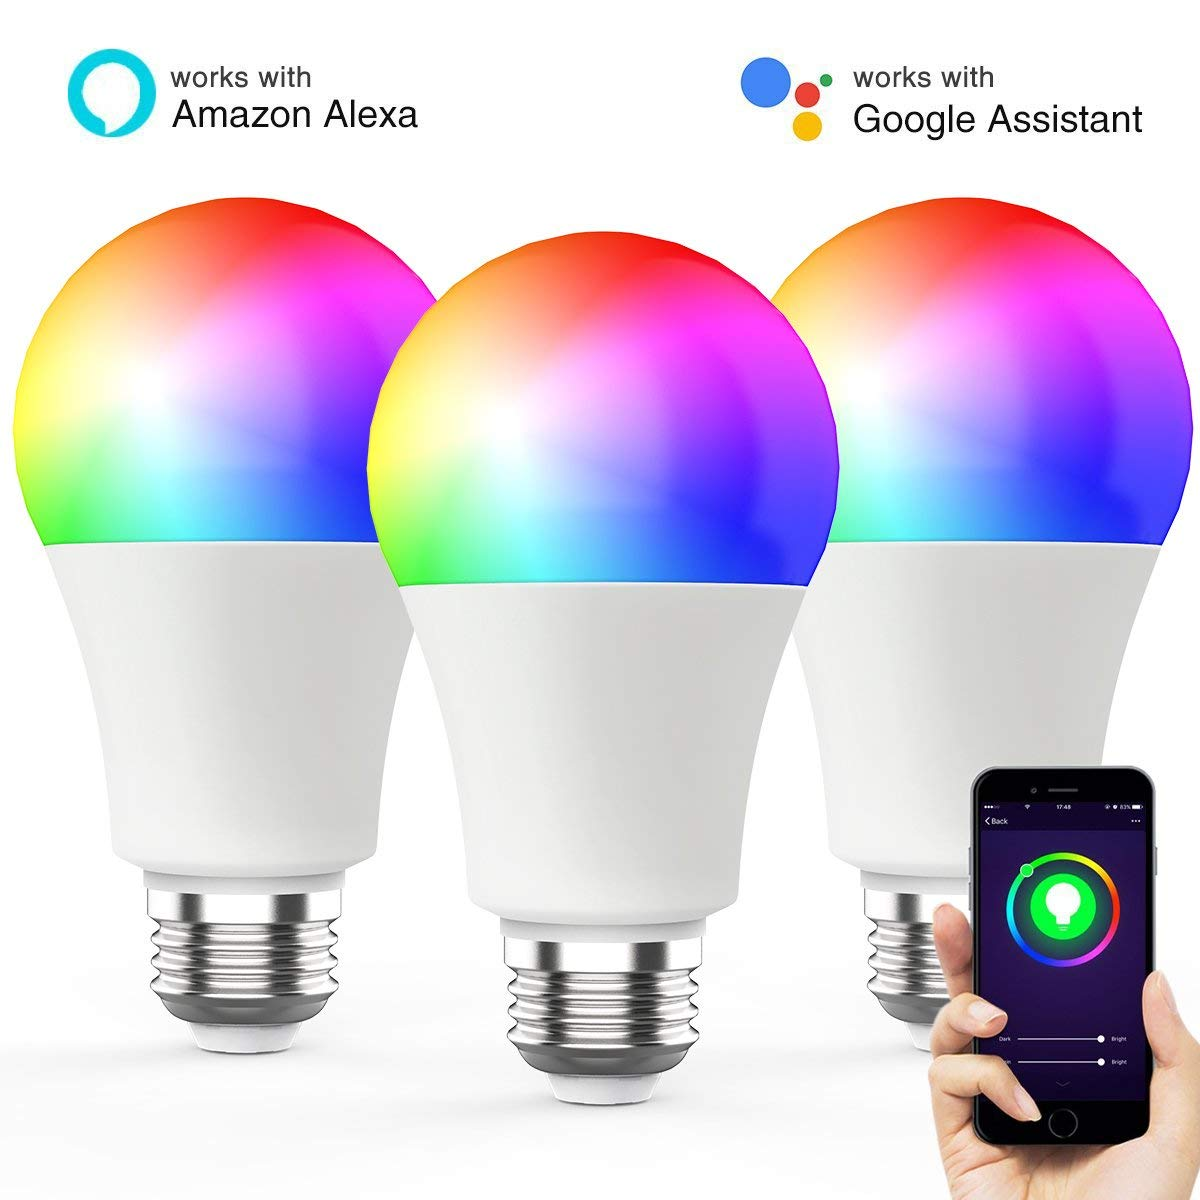 60w Light Bulb Us 39 55 8 Off Wi Fi Smart Led Light Bulb Lamp E26 Rgbcw 7w 600lm 60w Equivalent Dimmable Homekit Work With Amazon Alexa And Google Home 3 Pack In